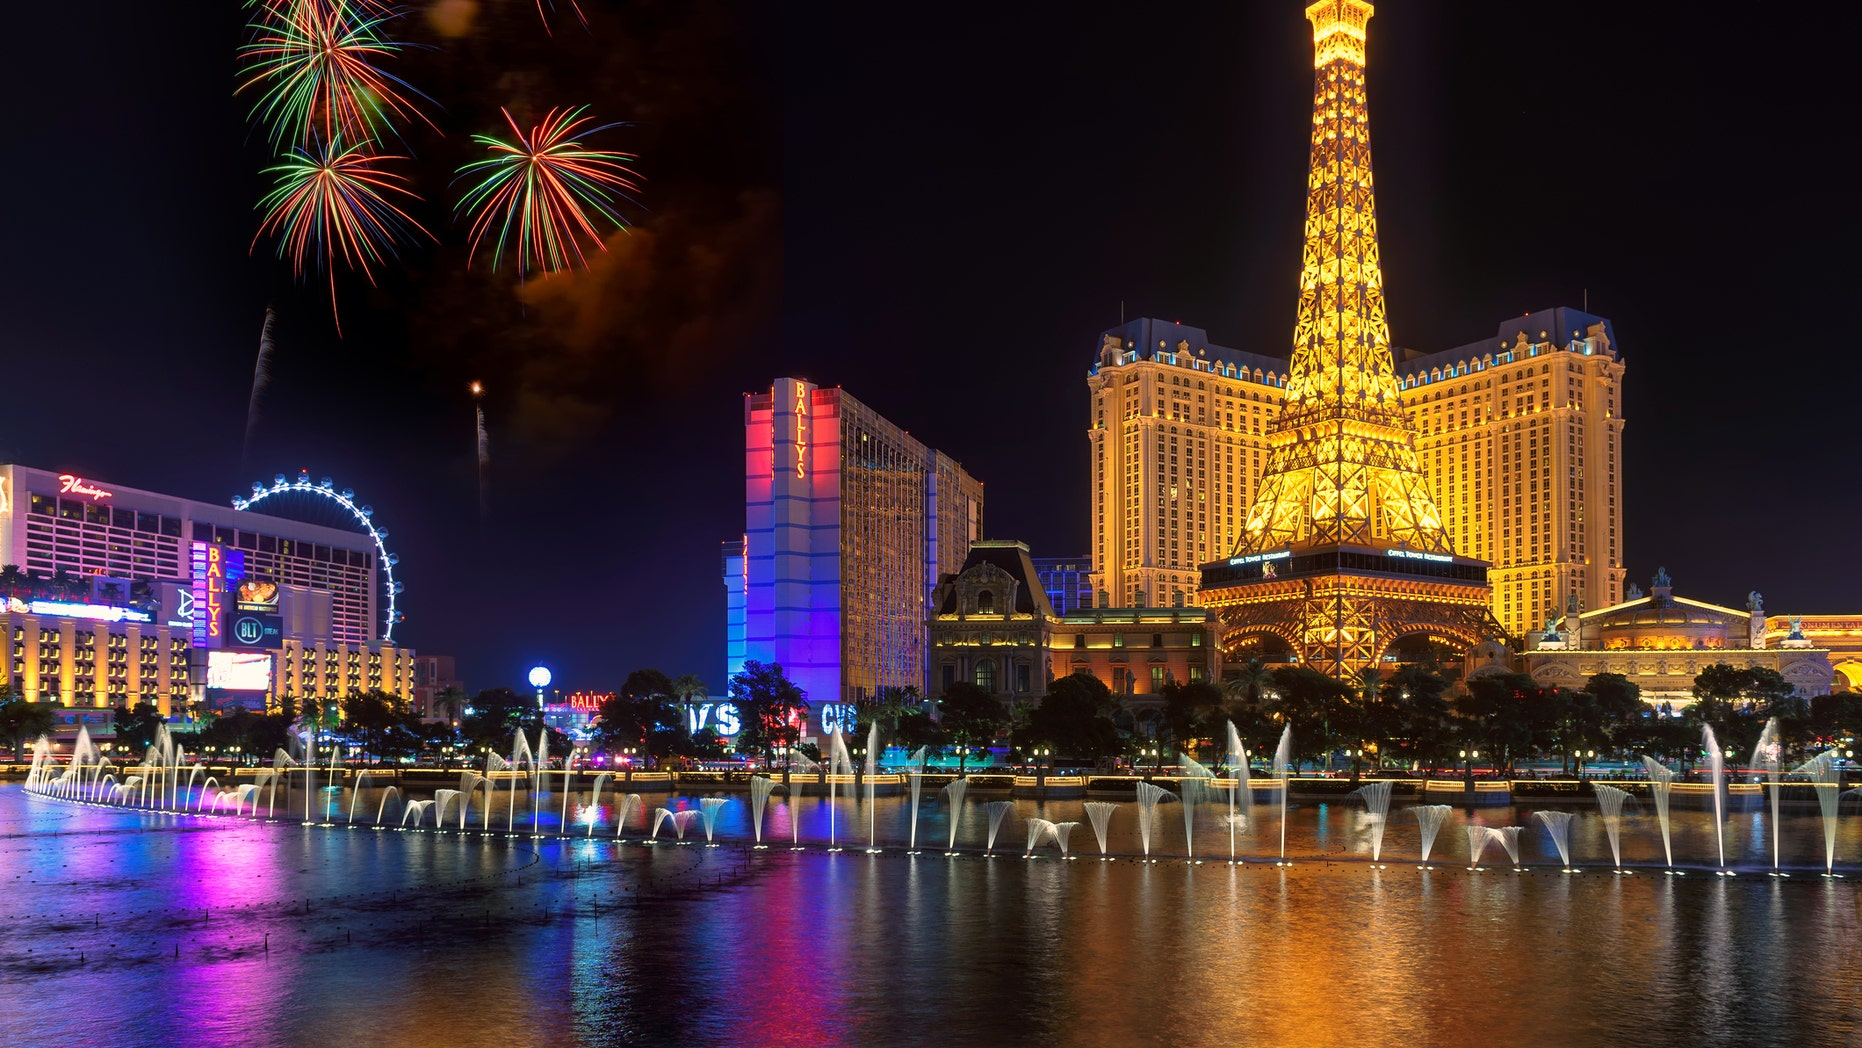 Las Vegas, Nevada - July 4, 2016: Fireworks at Bellagio Fountains in front of Paris Las Vegas hotel and casino and a replica of the Eiffel Tower in Las Vegas